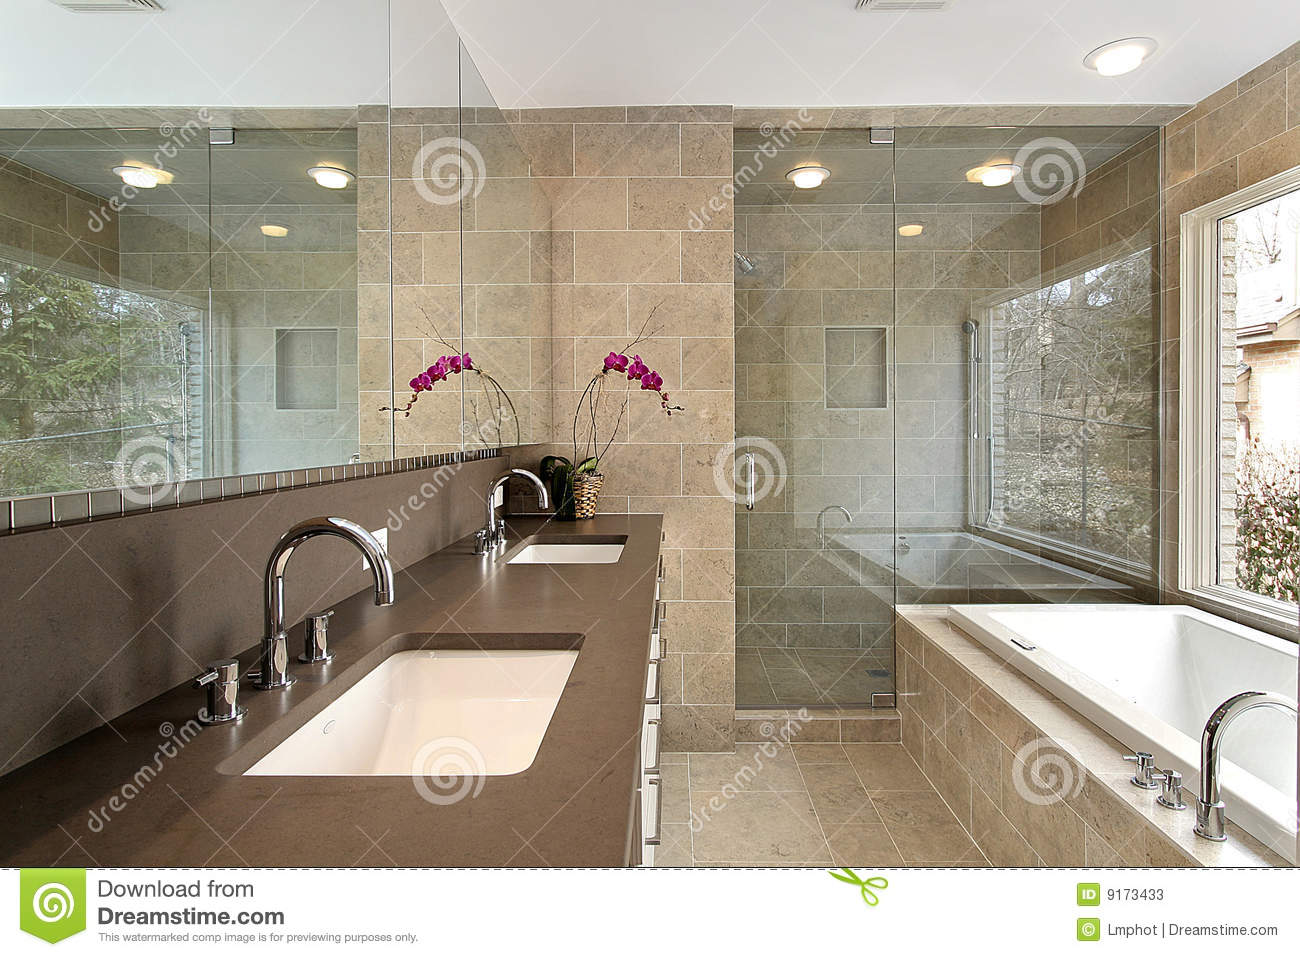 Master bath in luxury home stock image. Image of fixtures ...